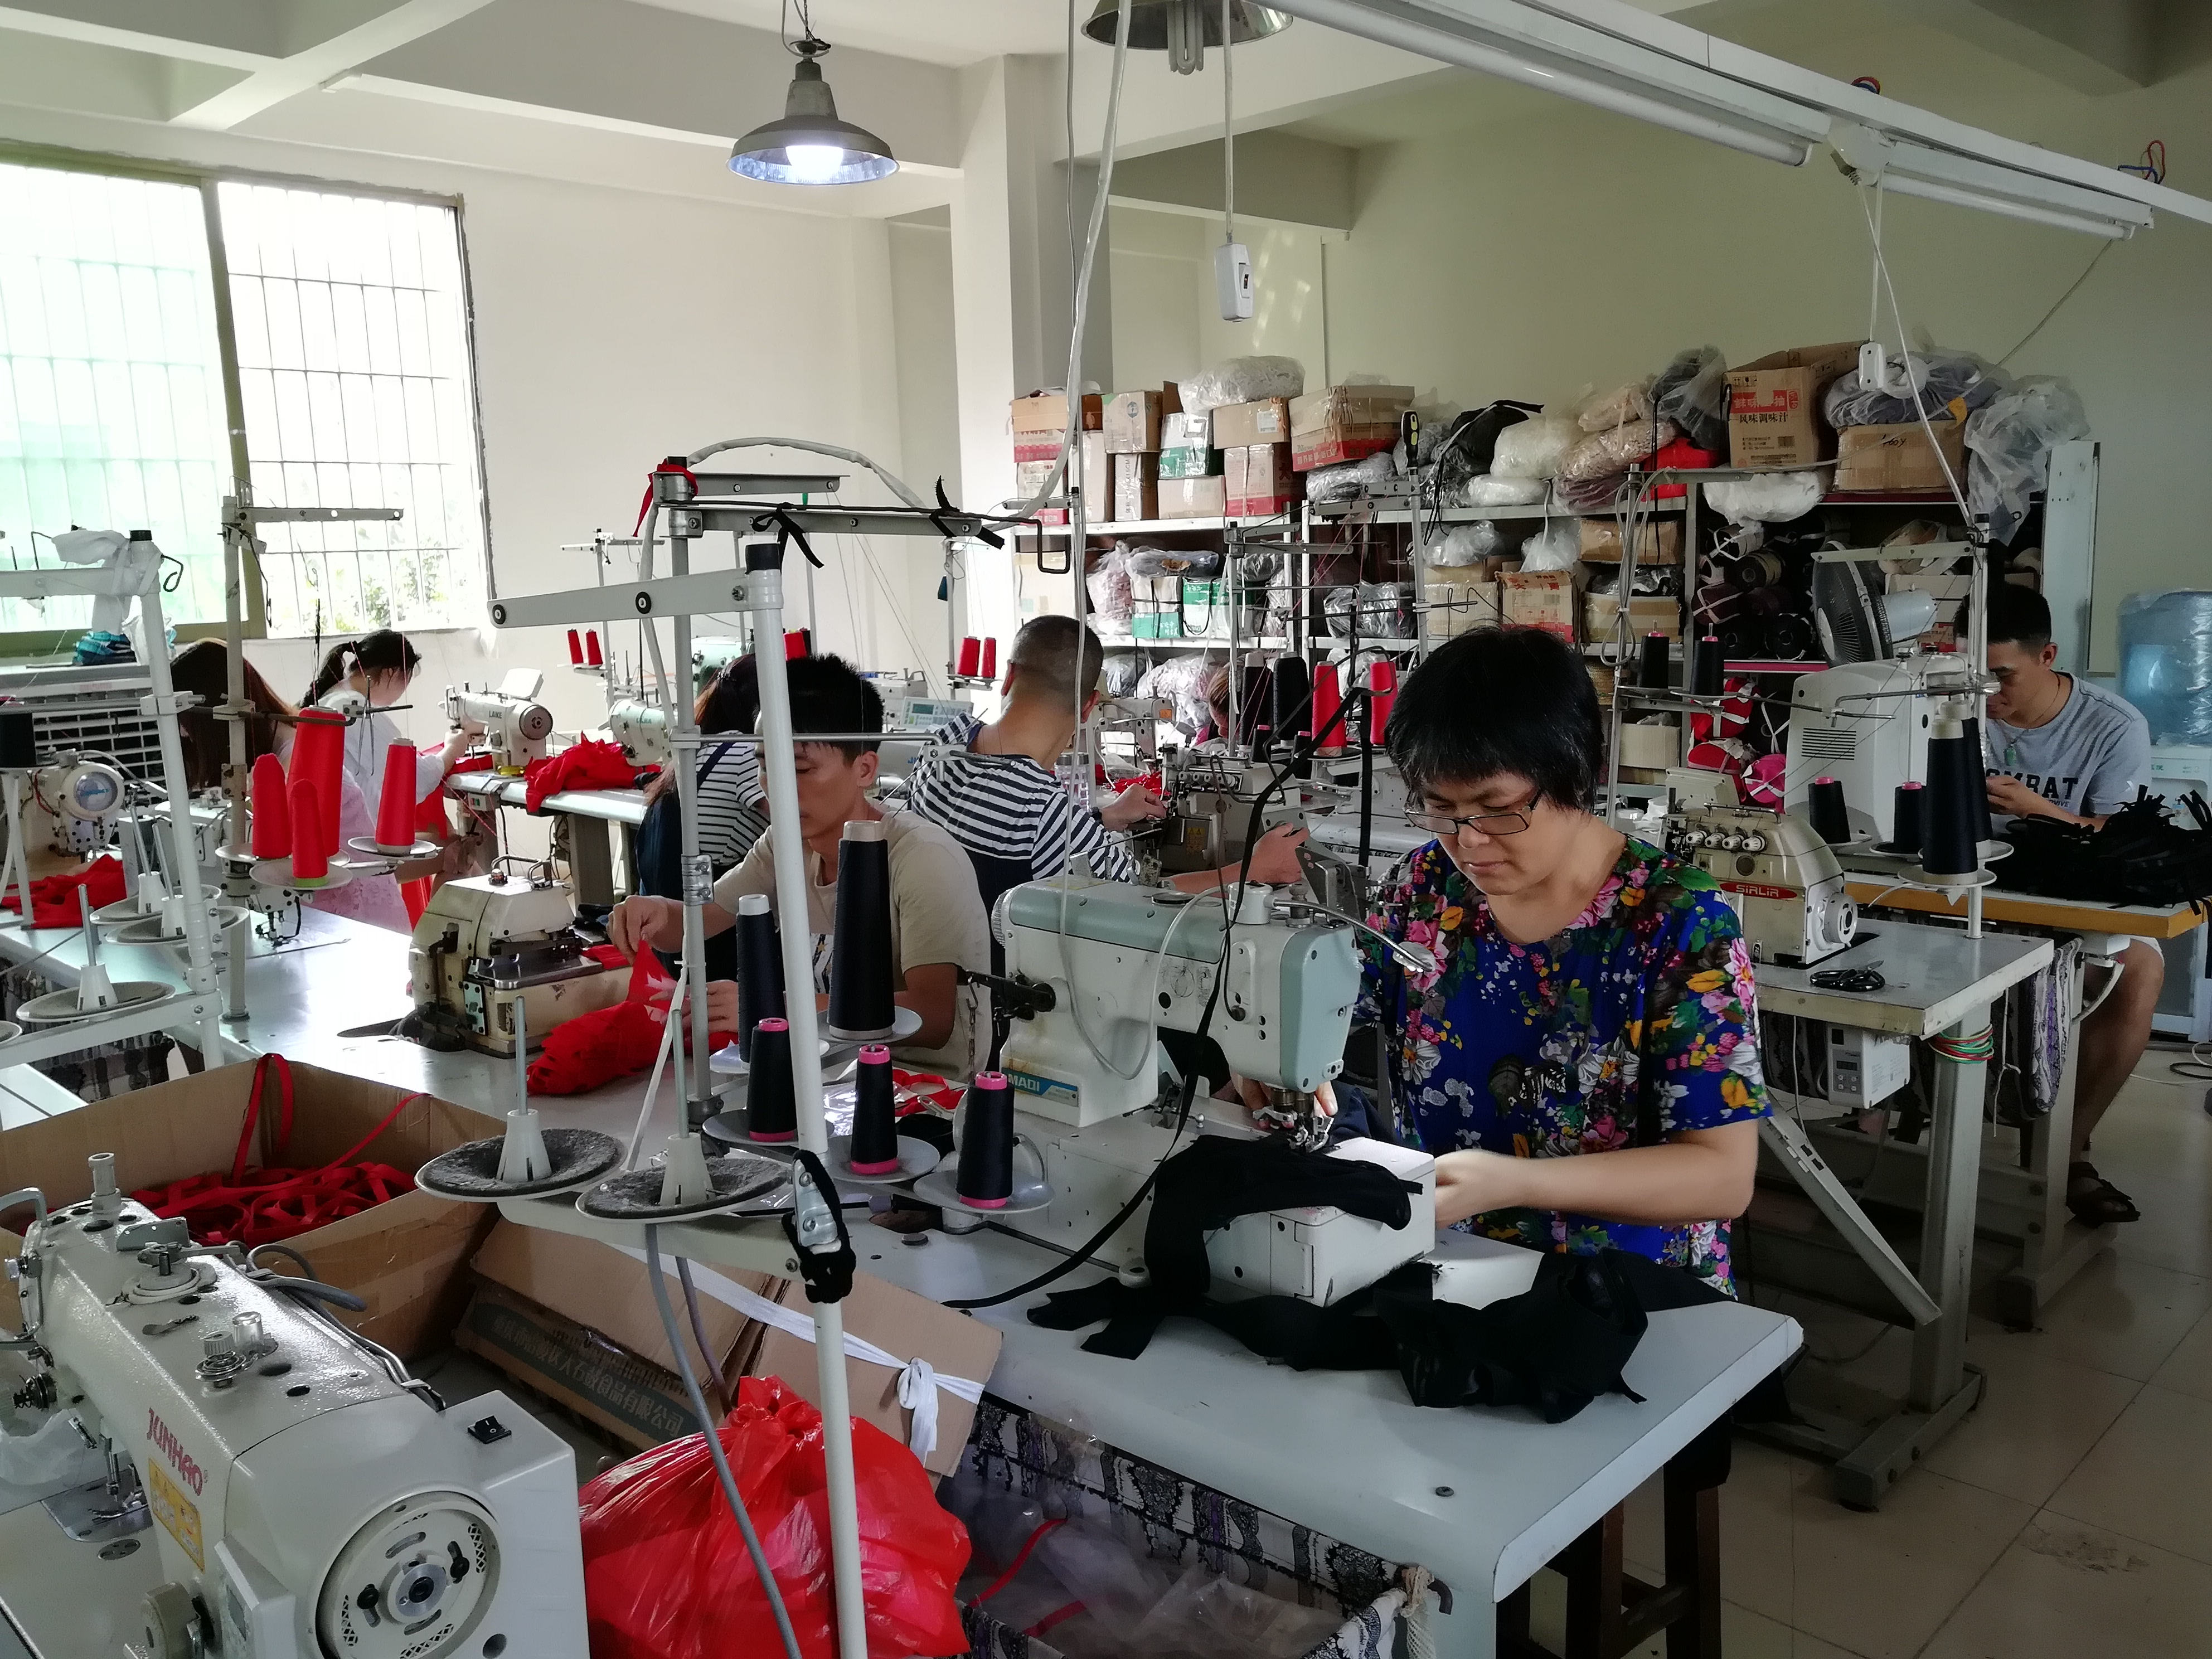 lingerie factory sewing room